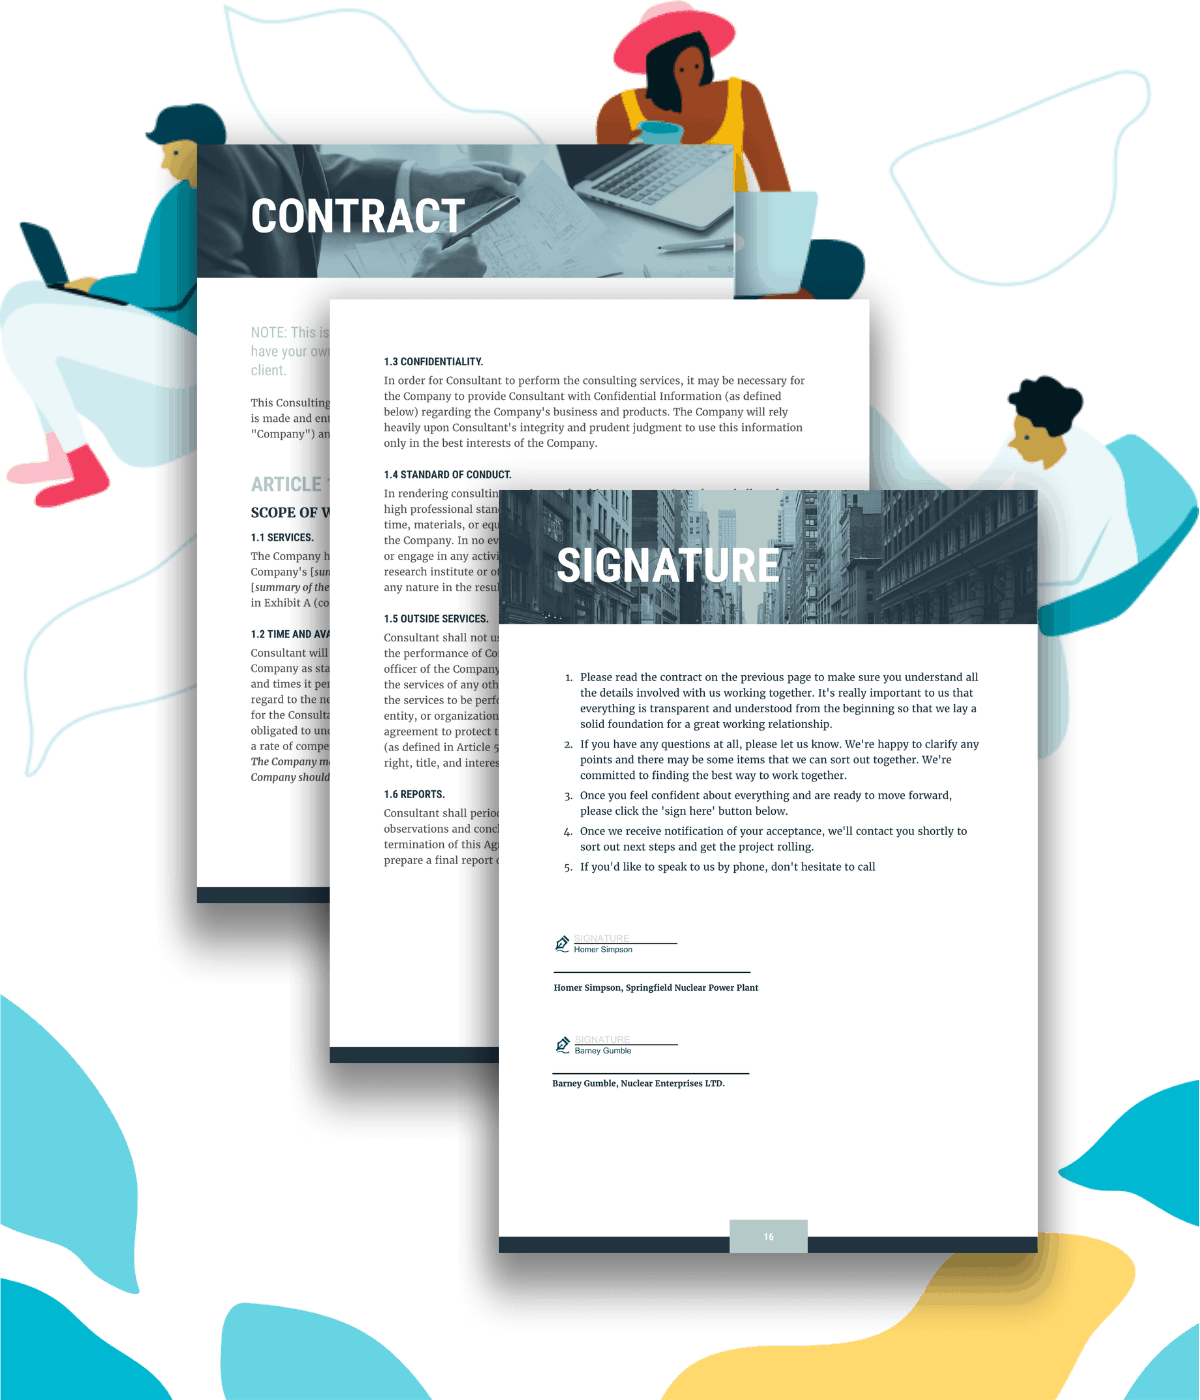 Example contract section and signature page for clients to esign a consulting proposal.